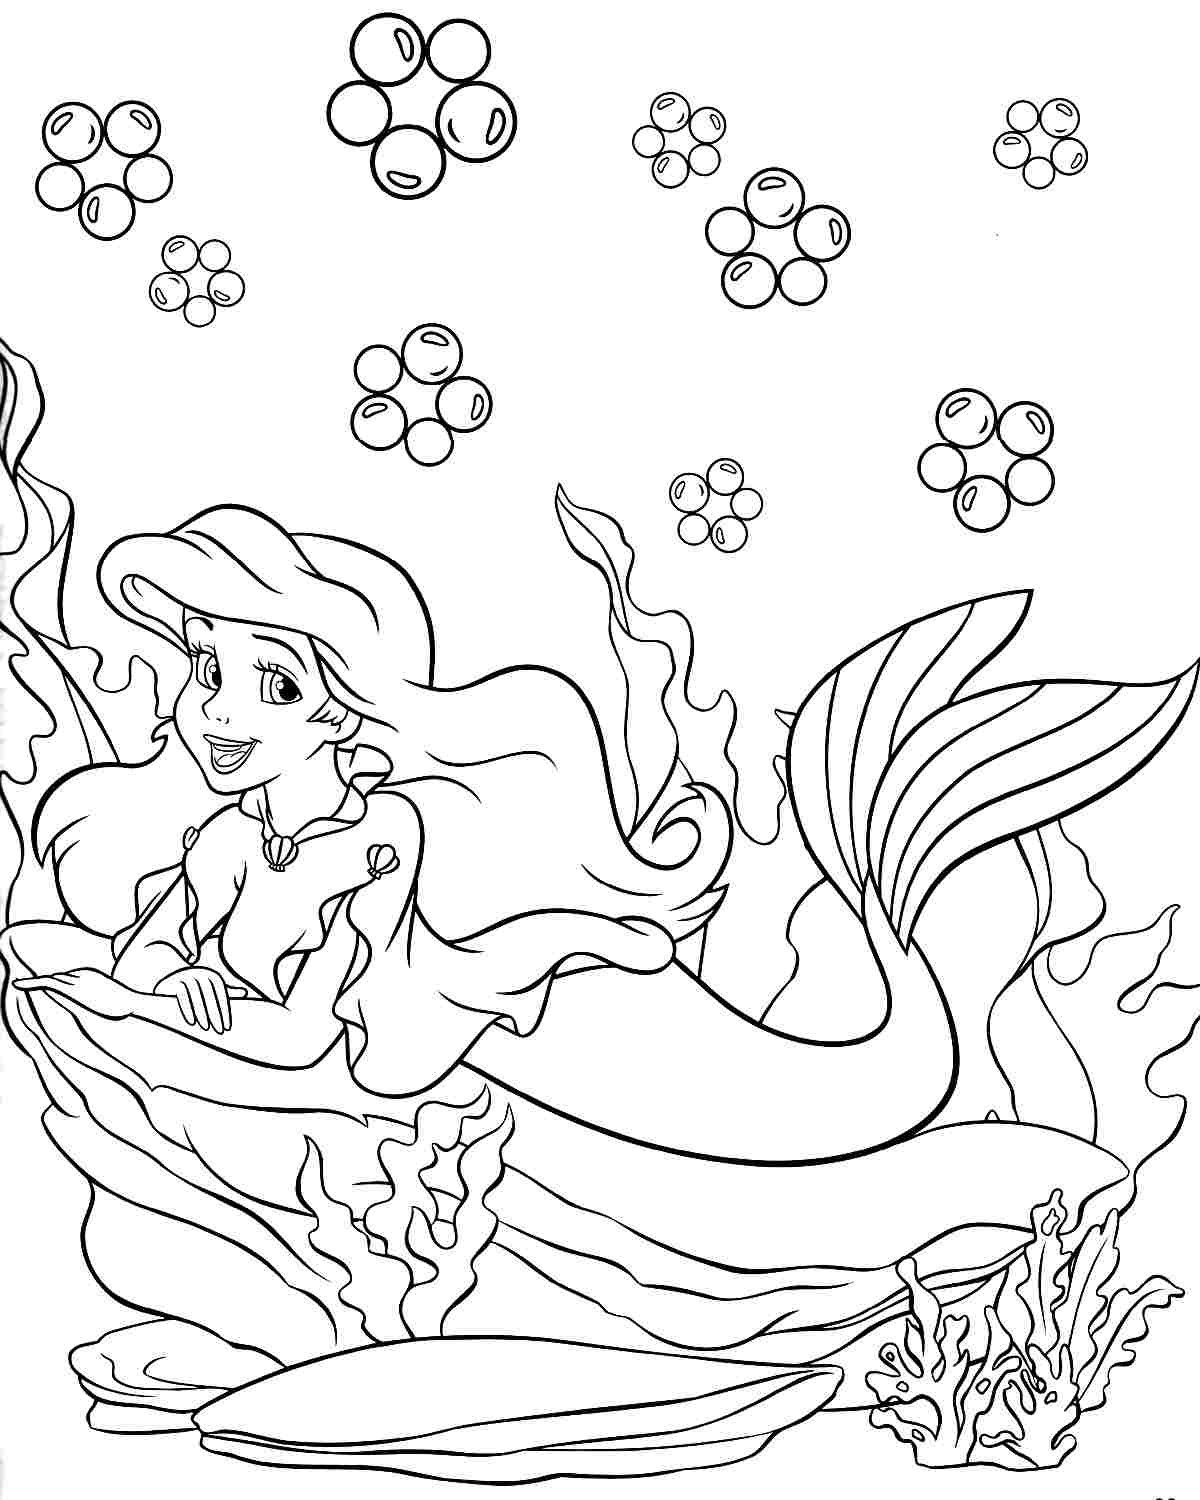 Free Printable Disney Frozen Christmas Coloring Pages With Princess Sheets Colouring